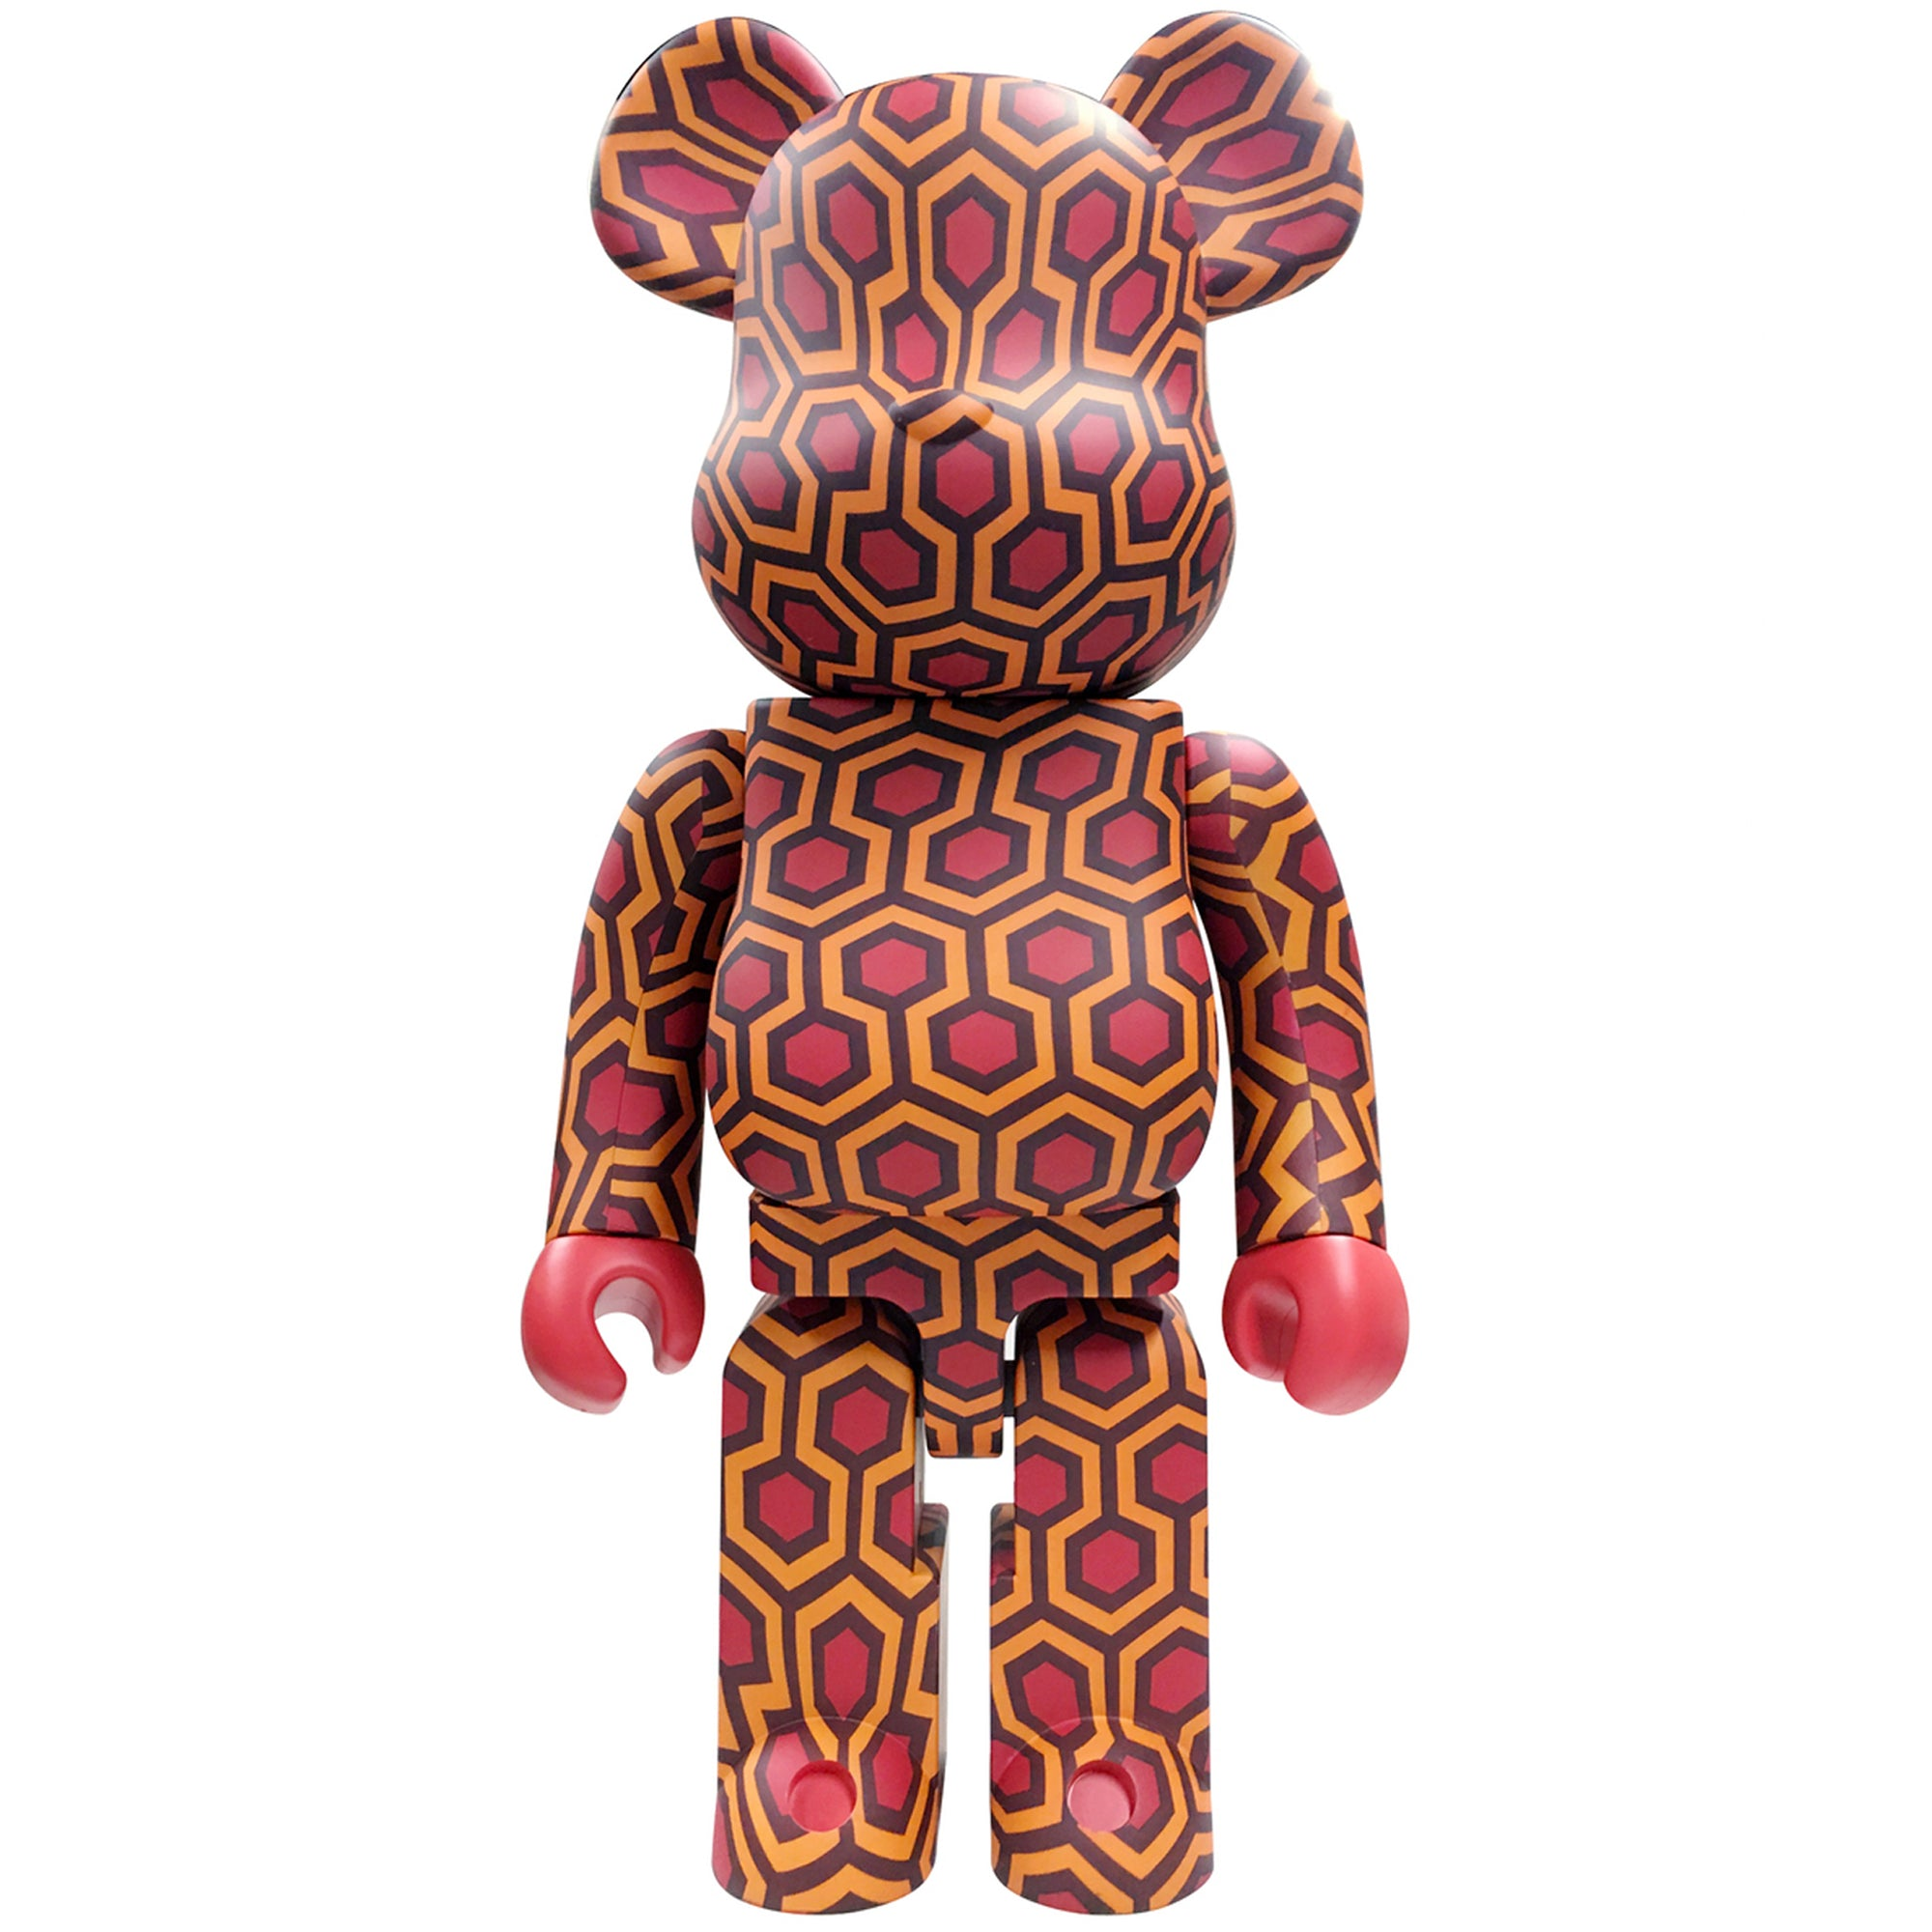 The Shining 1000% Bearbrick by Medicom Toy